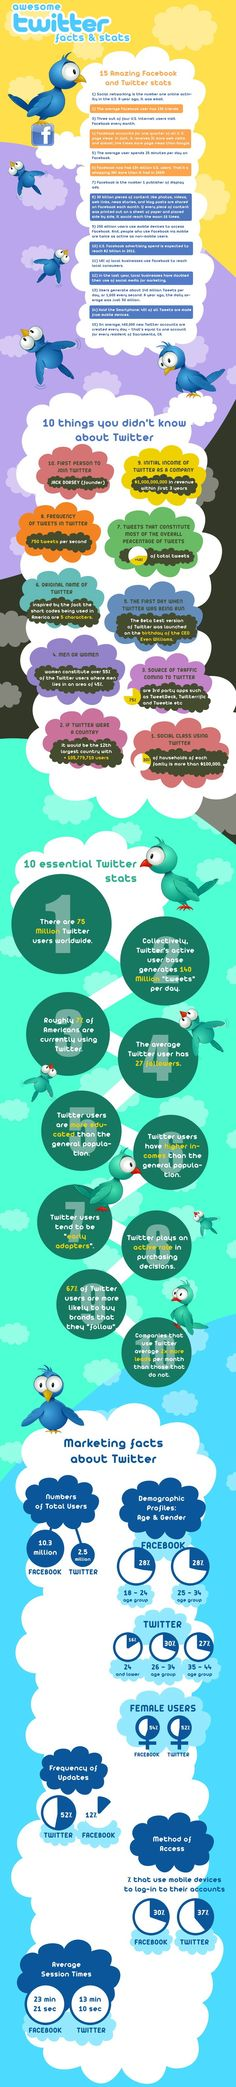 Awesome Twitter & Facebook Facts & Stats